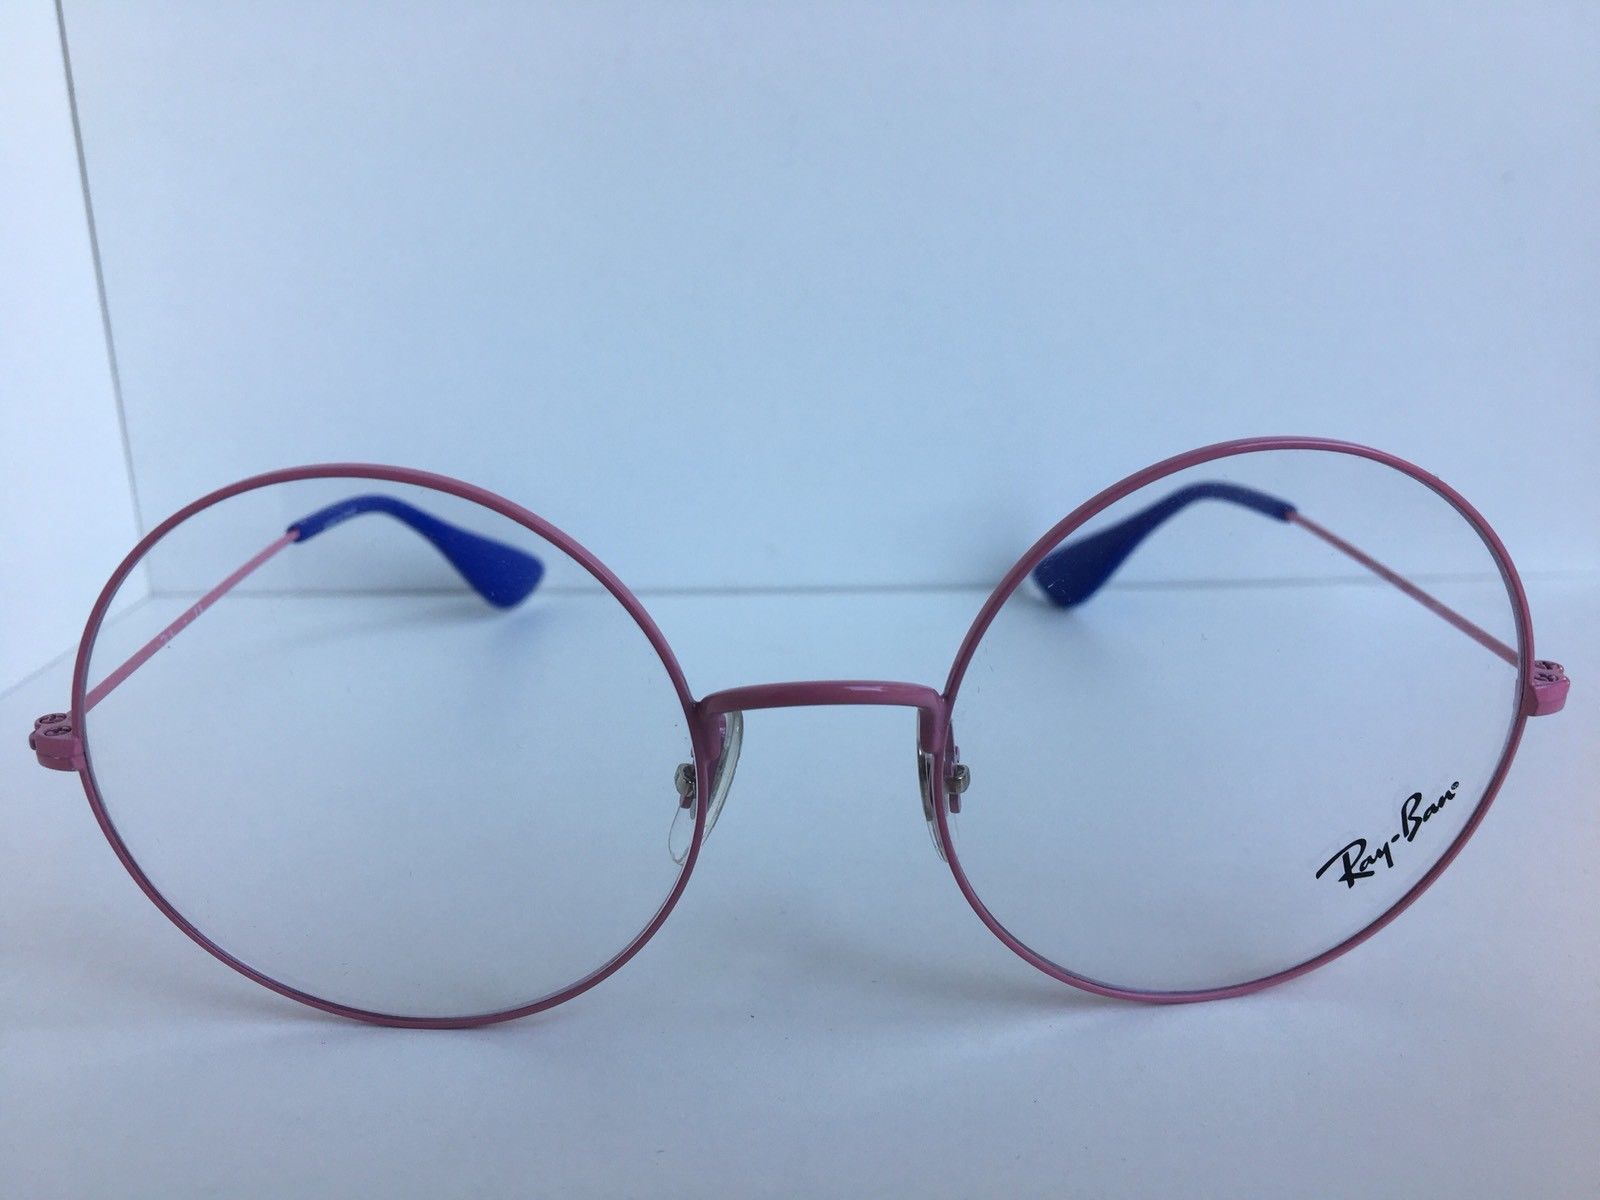 6e0d31703f New Ray-Ban RB 6382 2840 53mm Pink Round Women Eyeglasses Frame